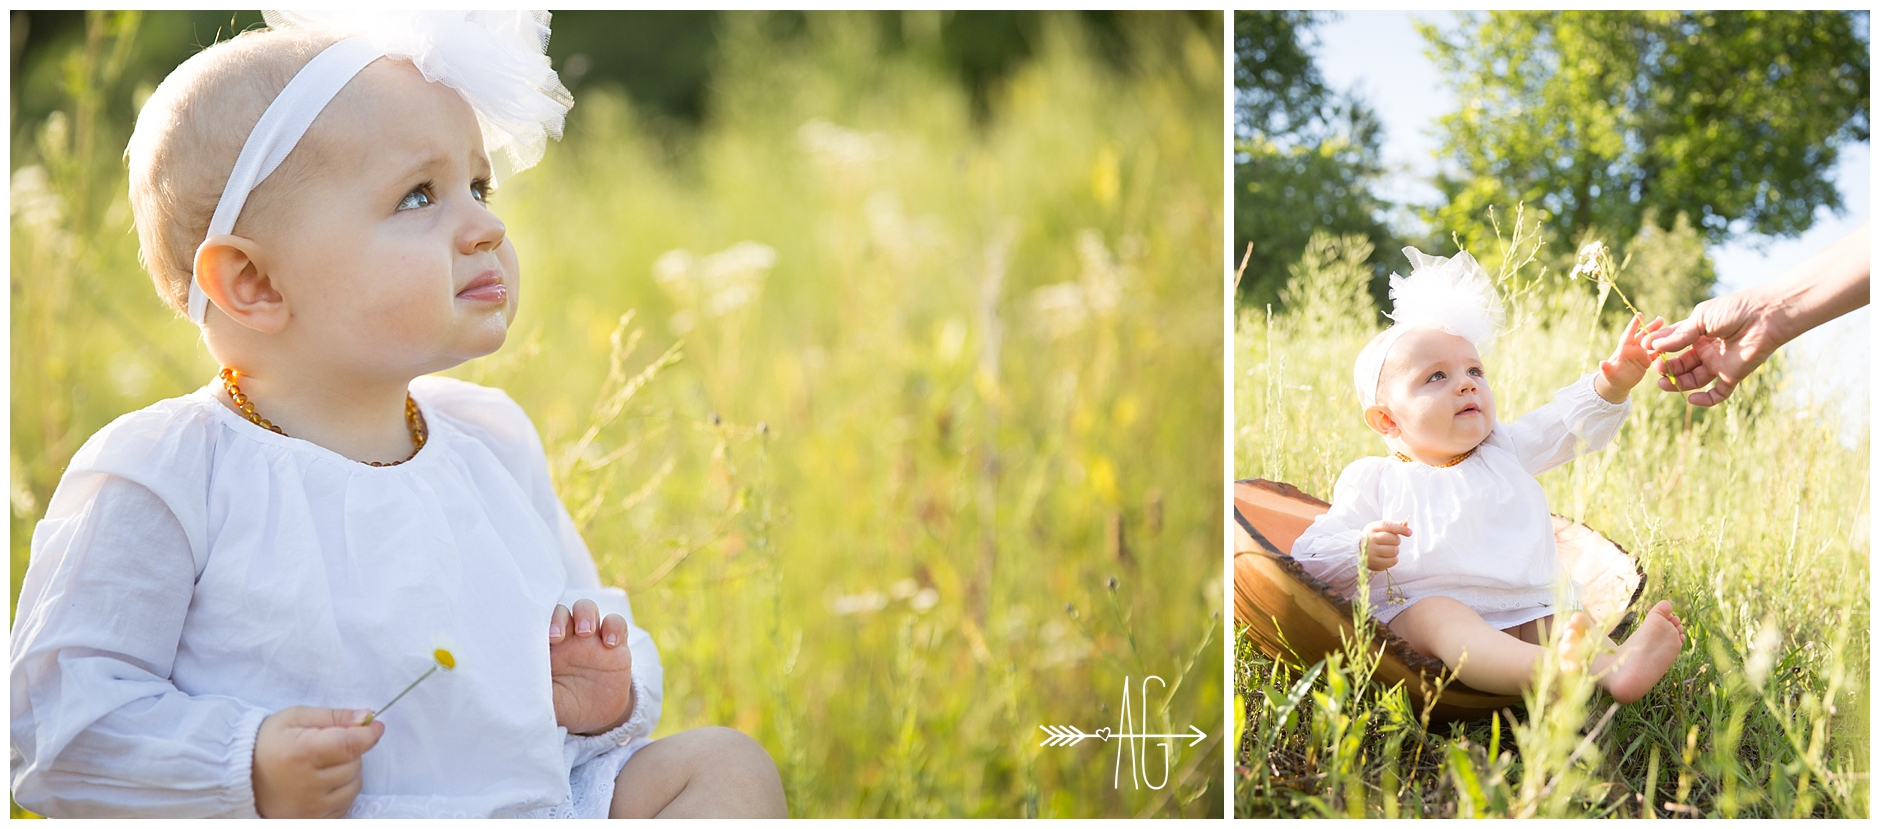 ©Aubrey Grace Photography 2014